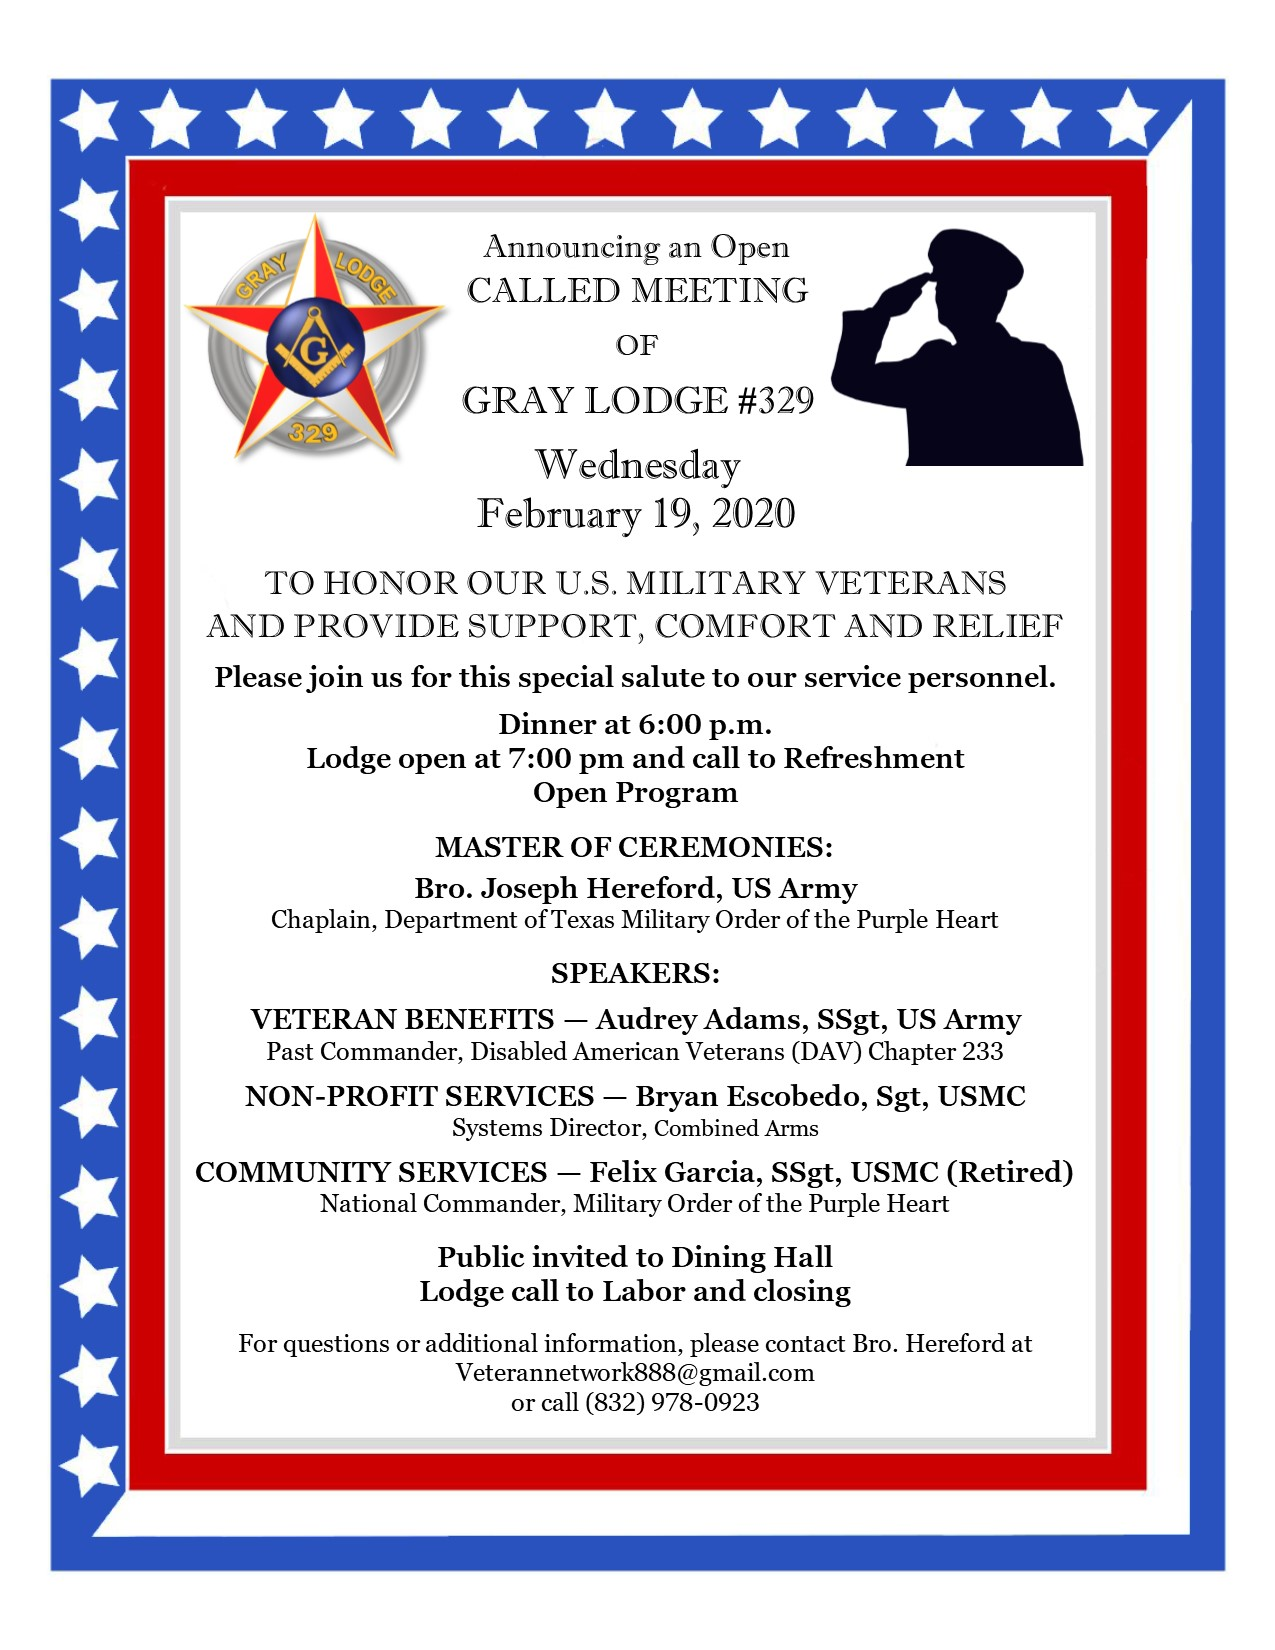 Announcing an Open CALLED MEETING OF GRAY LODGE #329 Wednesday February 19, 2020 TO HONOR OUR U.S. MILITARY VETERANS AND PROVIDE SUPPORT, COMFORT AND RELIEF Please join us for this special salute to our service personnel. Dinner at 6:00 p.m. Lodge open at 7:00 pm and call to Refreshment Open Program MASTER OF CEREMONIES: Bro. Joseph Hereford, US Army Chaplain, Department of Texas Military Order of the Purple Heart SPEAKERS: VETERAN BENEFITS — Audrey Adams, SSgt, US Army Past Commander, Disabled American Veterans (DAV) Chapter 233 NON-PROFIT SERVICES — Bryan Escobedo, Sgt, USMC Systems Director, Combined Arms COMMUNITY SERVICES — Felix Garcia, SSgt, USMC (Retired) National Commander, Military Order of the Purple Heart Public invited to Dining Hall Lodge call to Labor and closing For questions or additional information, please contact Bro. Hereford at Veterannetwork888@gmail.com or call (832) 978-0923